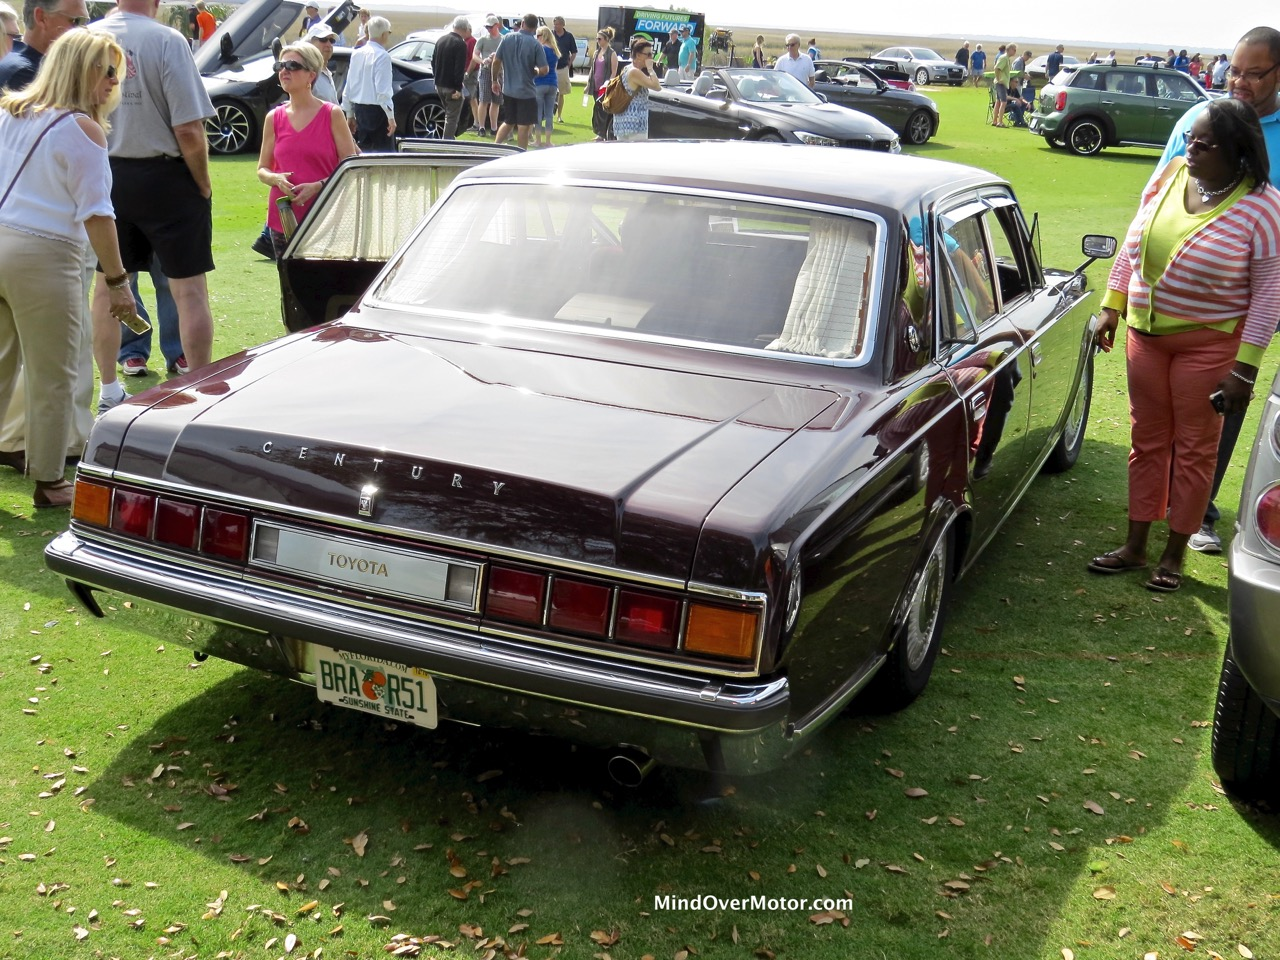 Toyota Century Rear Doors Closed